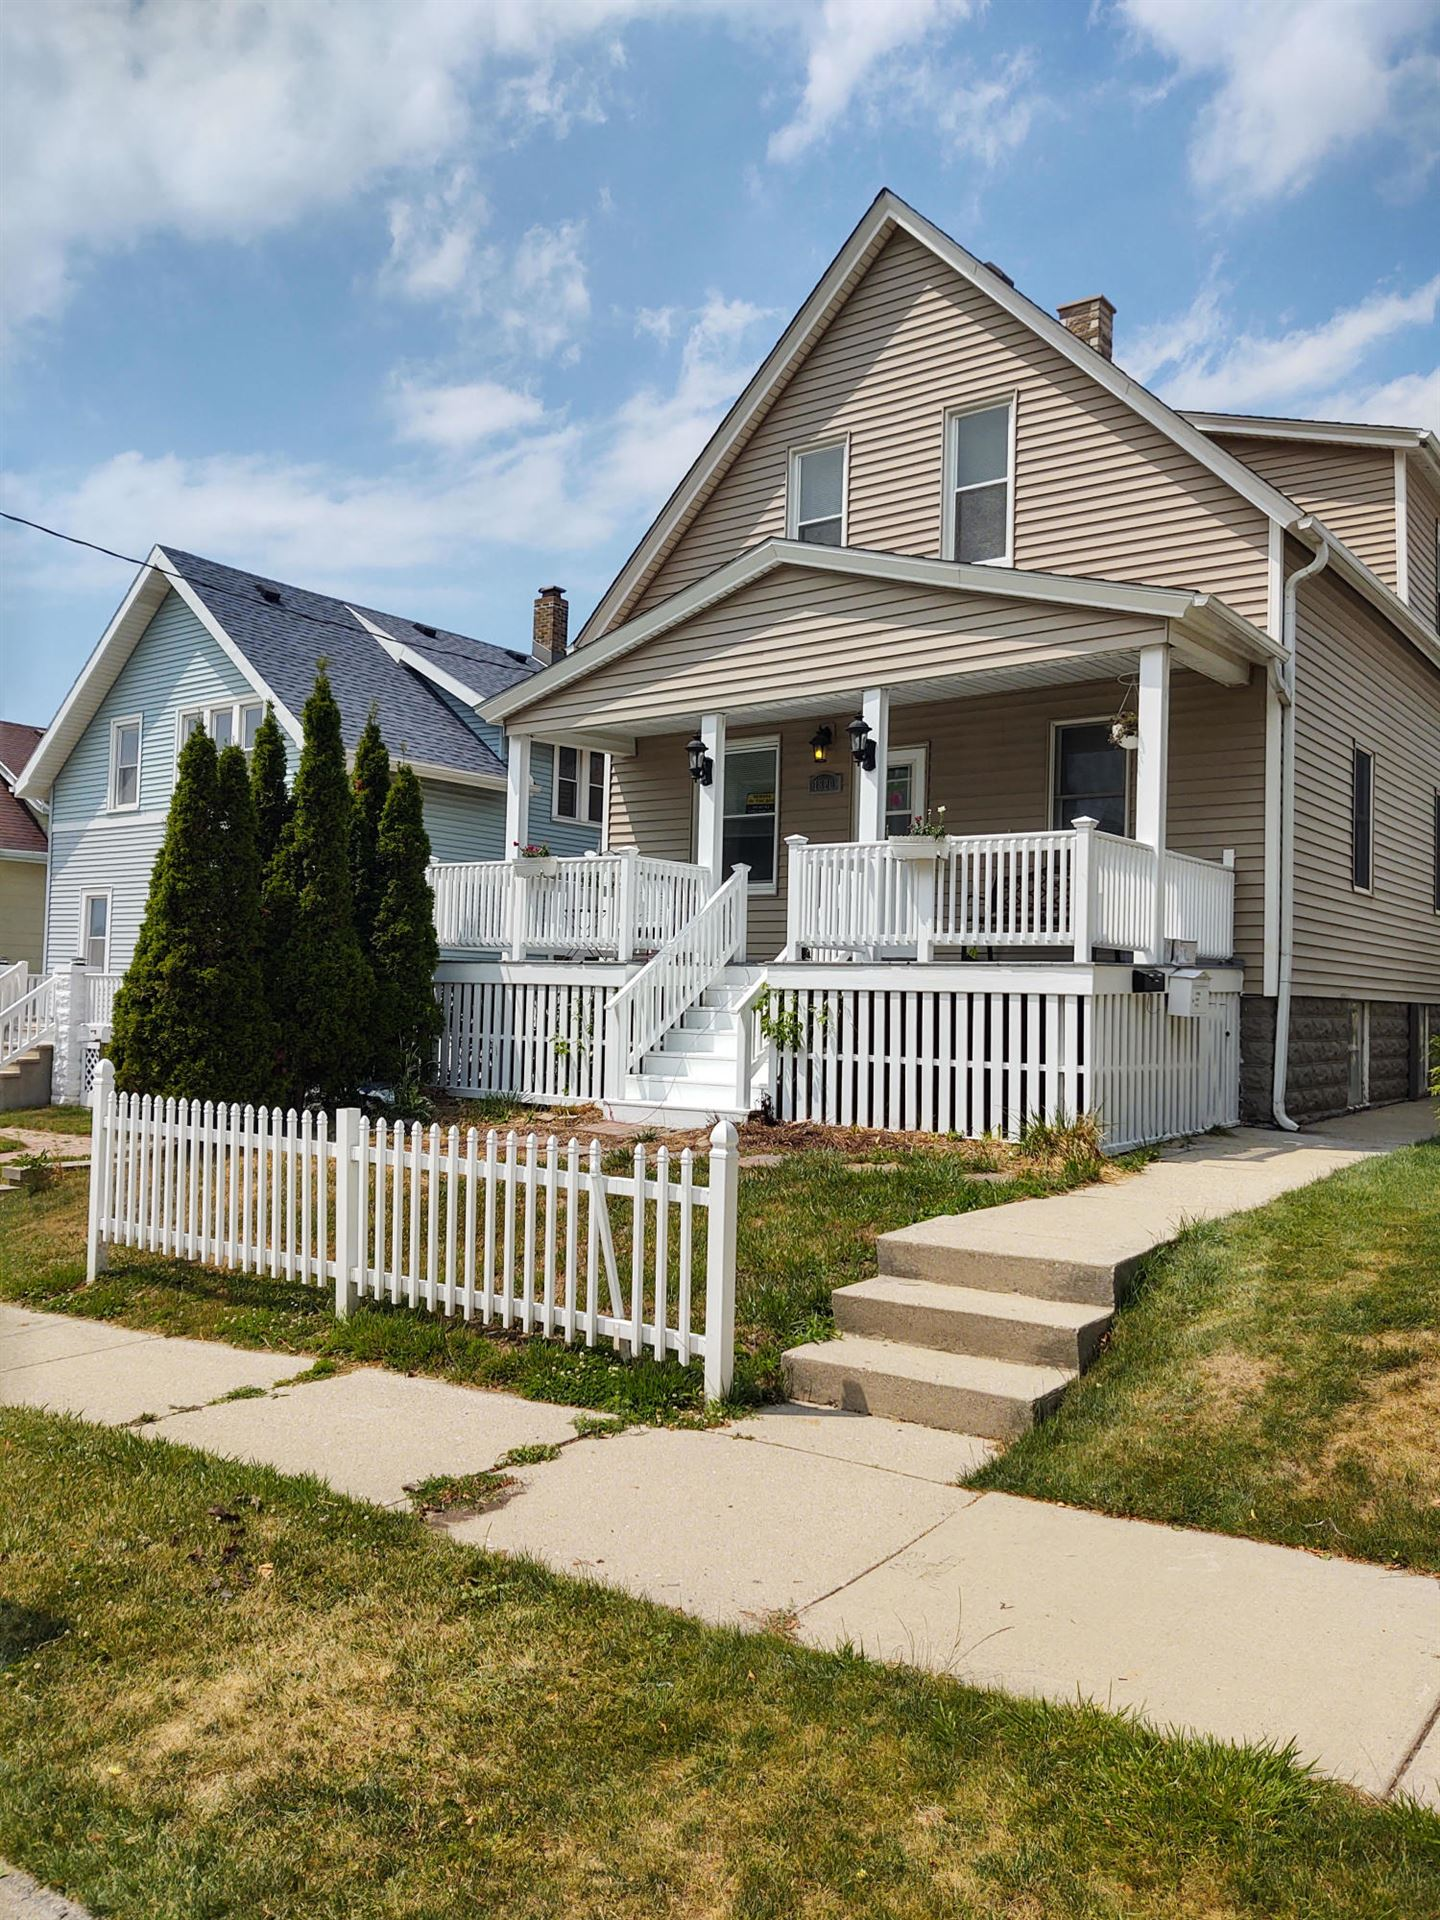 1320 Madison Ave, South Milwaukee, WI 53172 - MLS#: 1748759